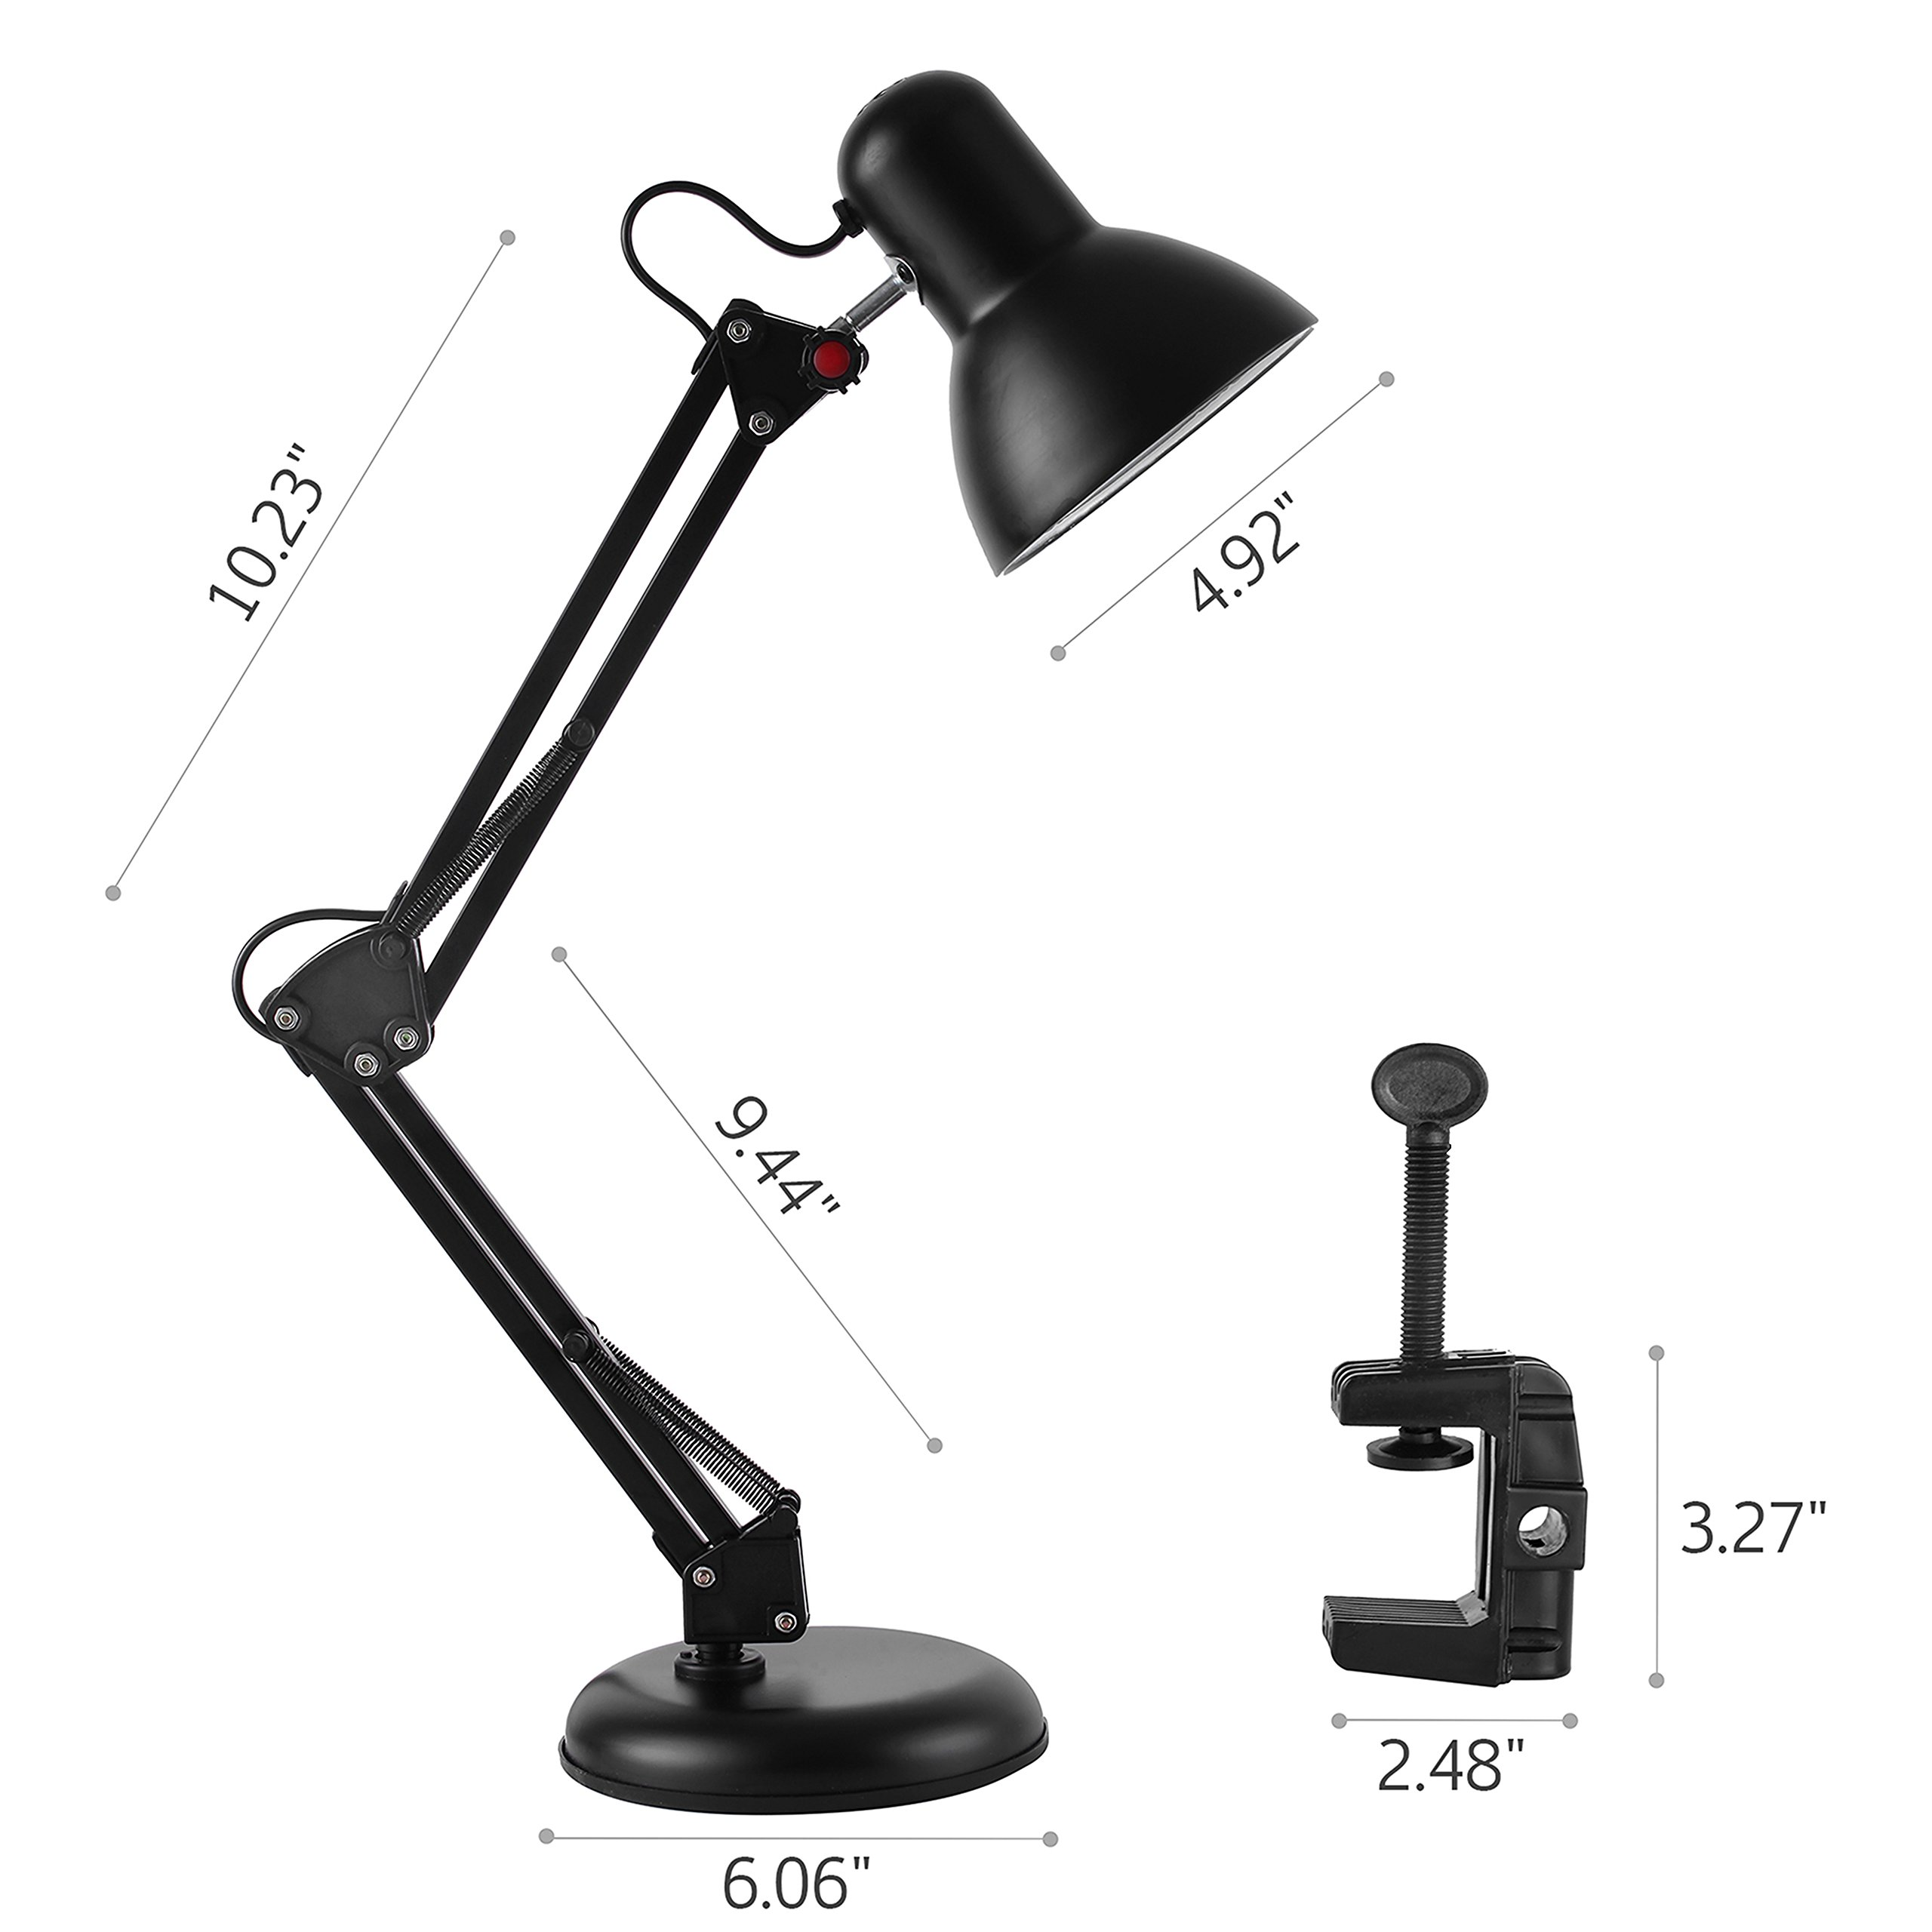 JIEDING Swing Arm Desk Lamp,Clamp-on Table Light with On/Off Switch,2 in 1 Metal Classic Architect Style for Study Room,Office,Studio,Dormitory(Black)(Small)